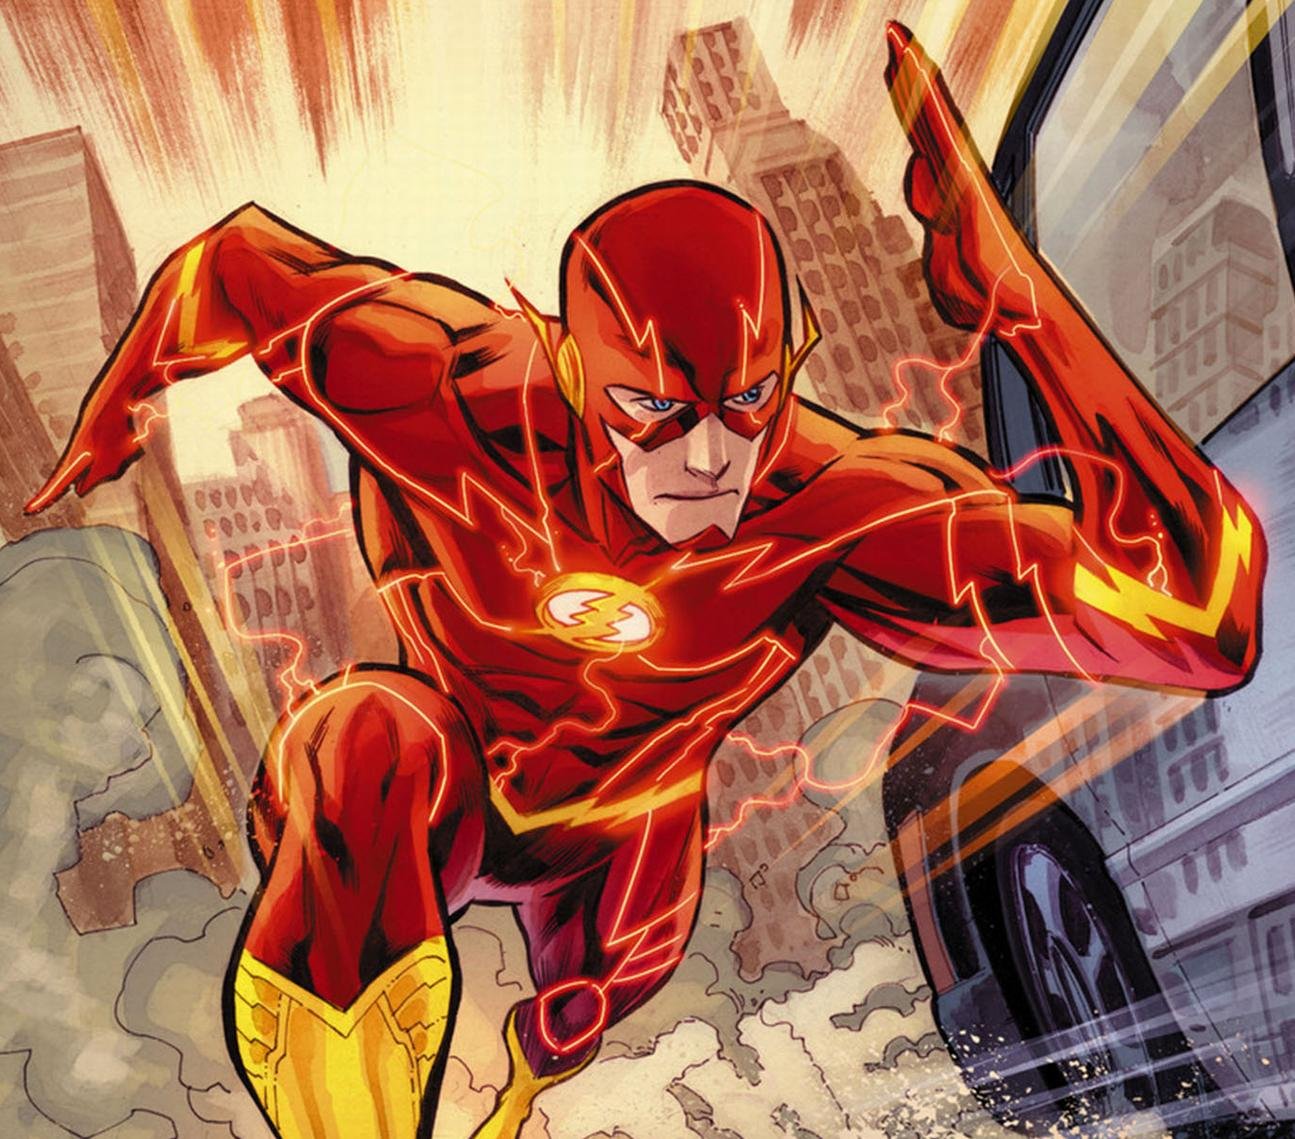 Happy #DCComics Birthday to Barry Allen AKA #The Flash, The Fastest Man Alive! https://t.co/MhvRLAAgYJ